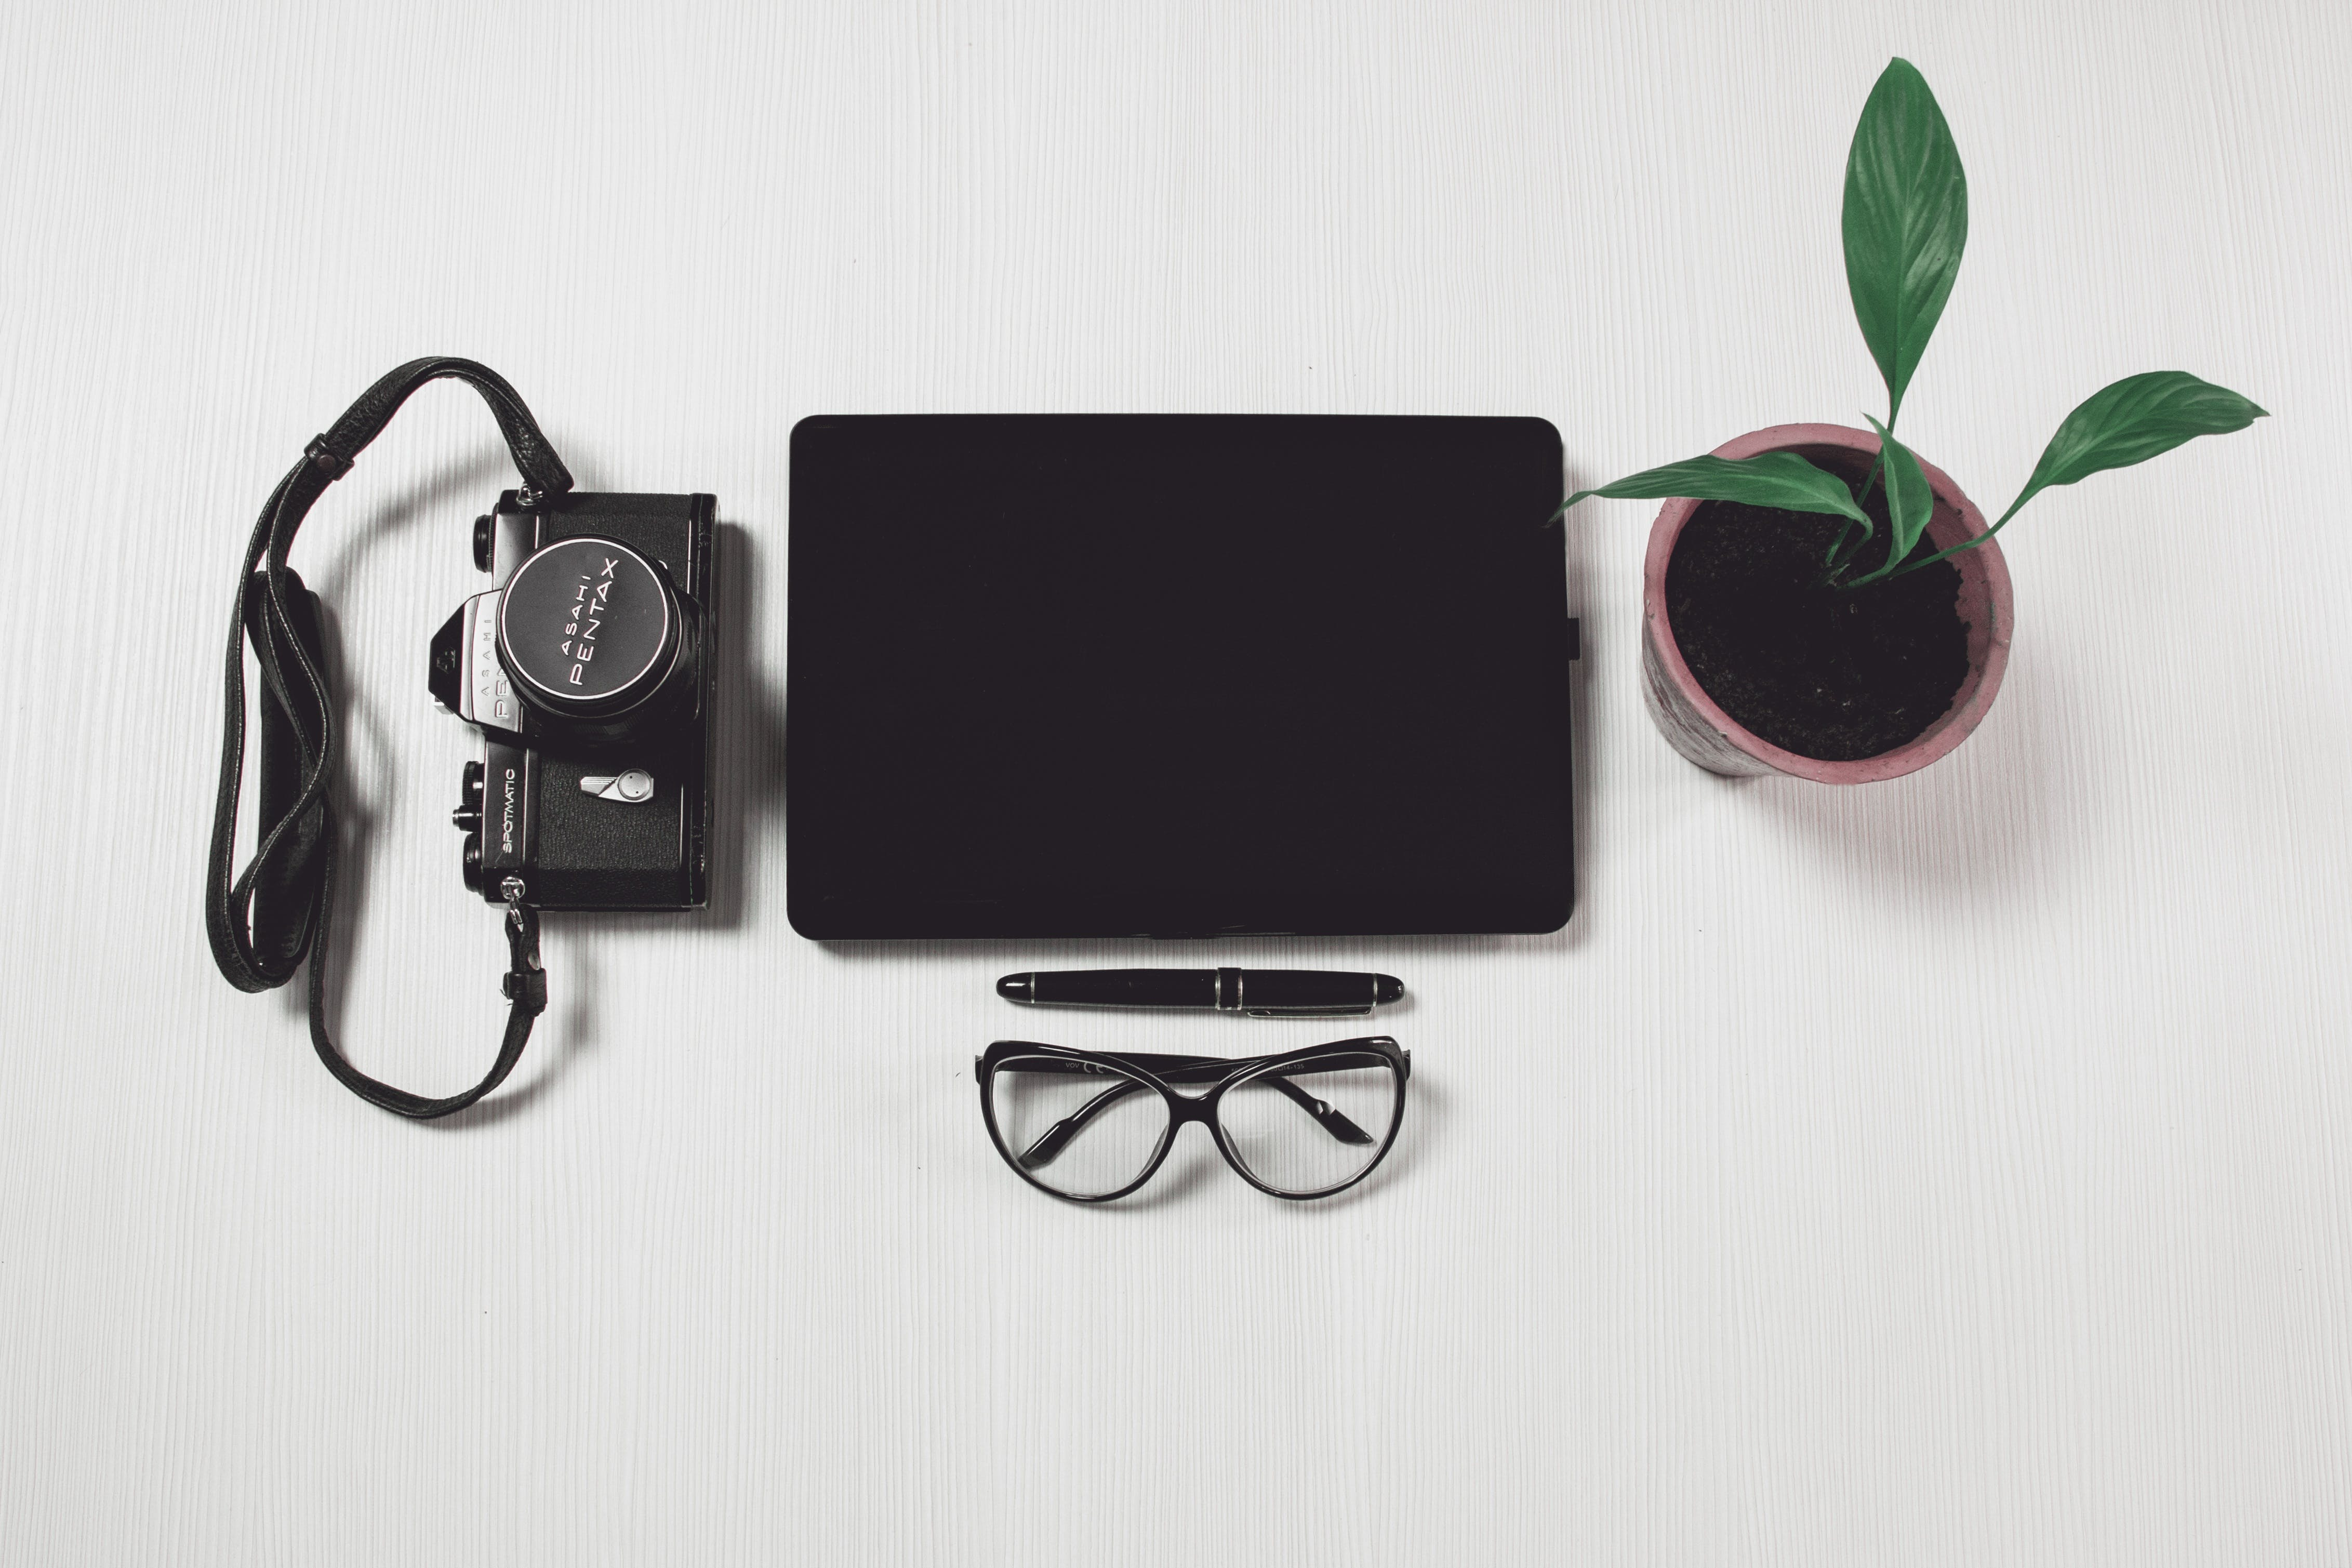 camera, connection, desk